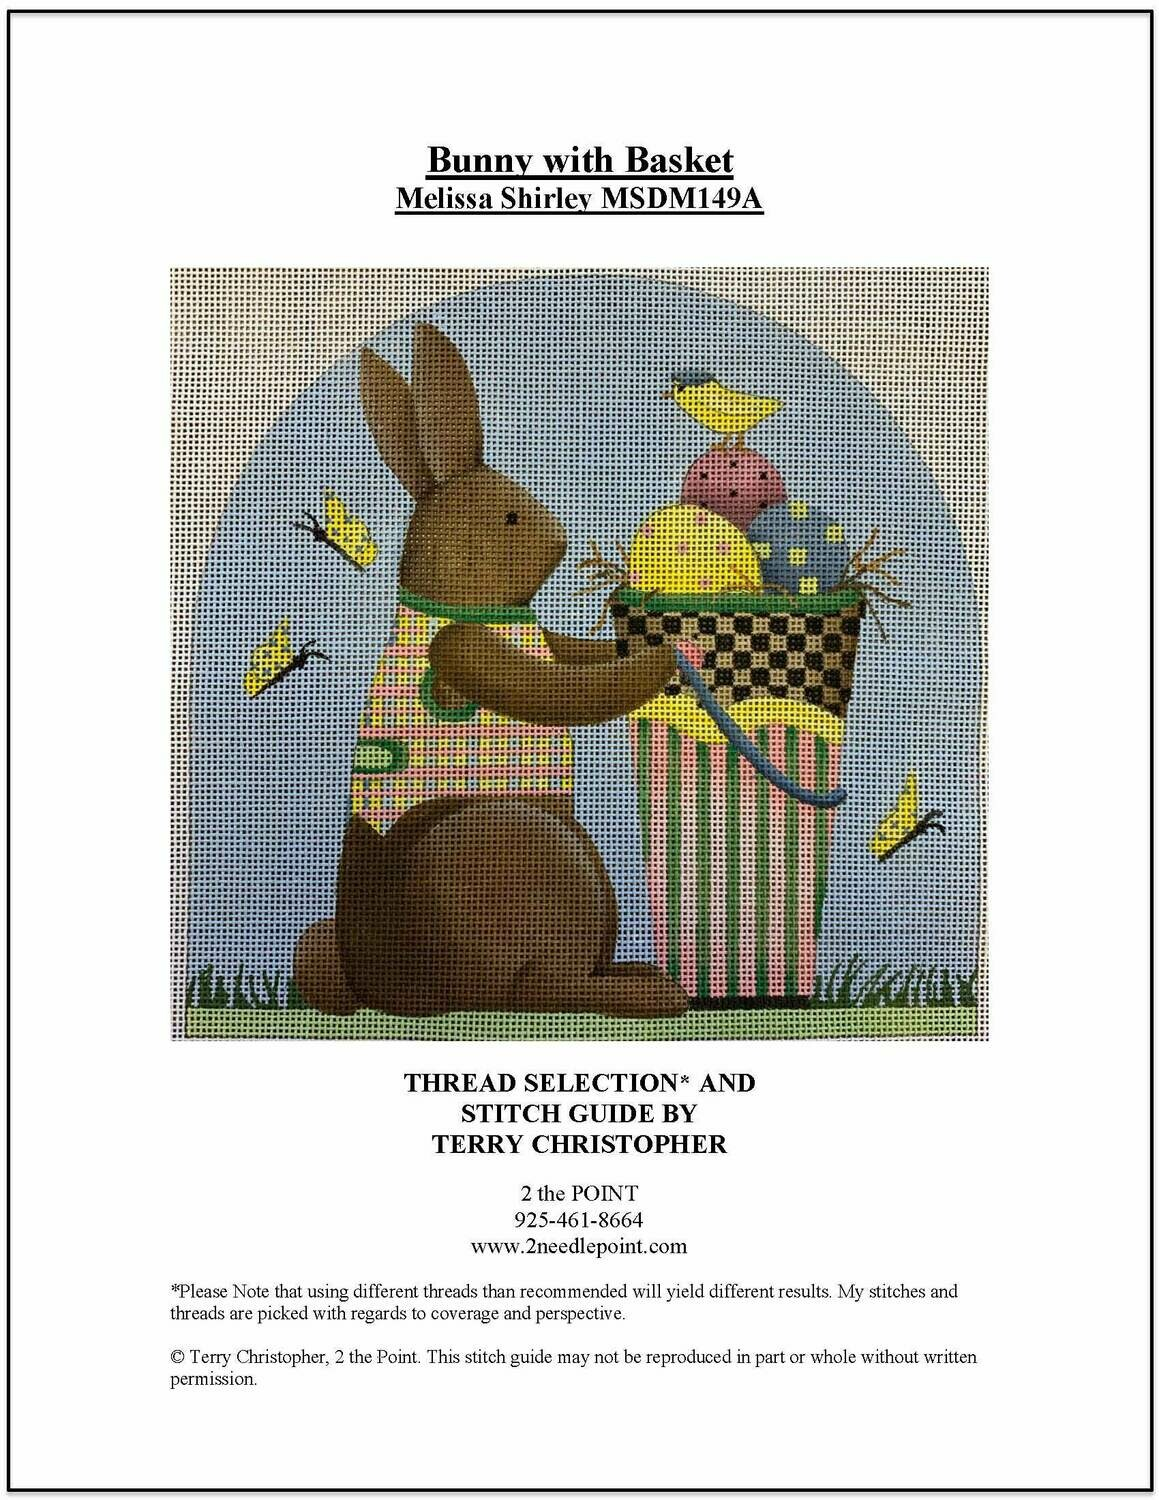 Melissa Shirley, Bunny with Basket MSDM149C